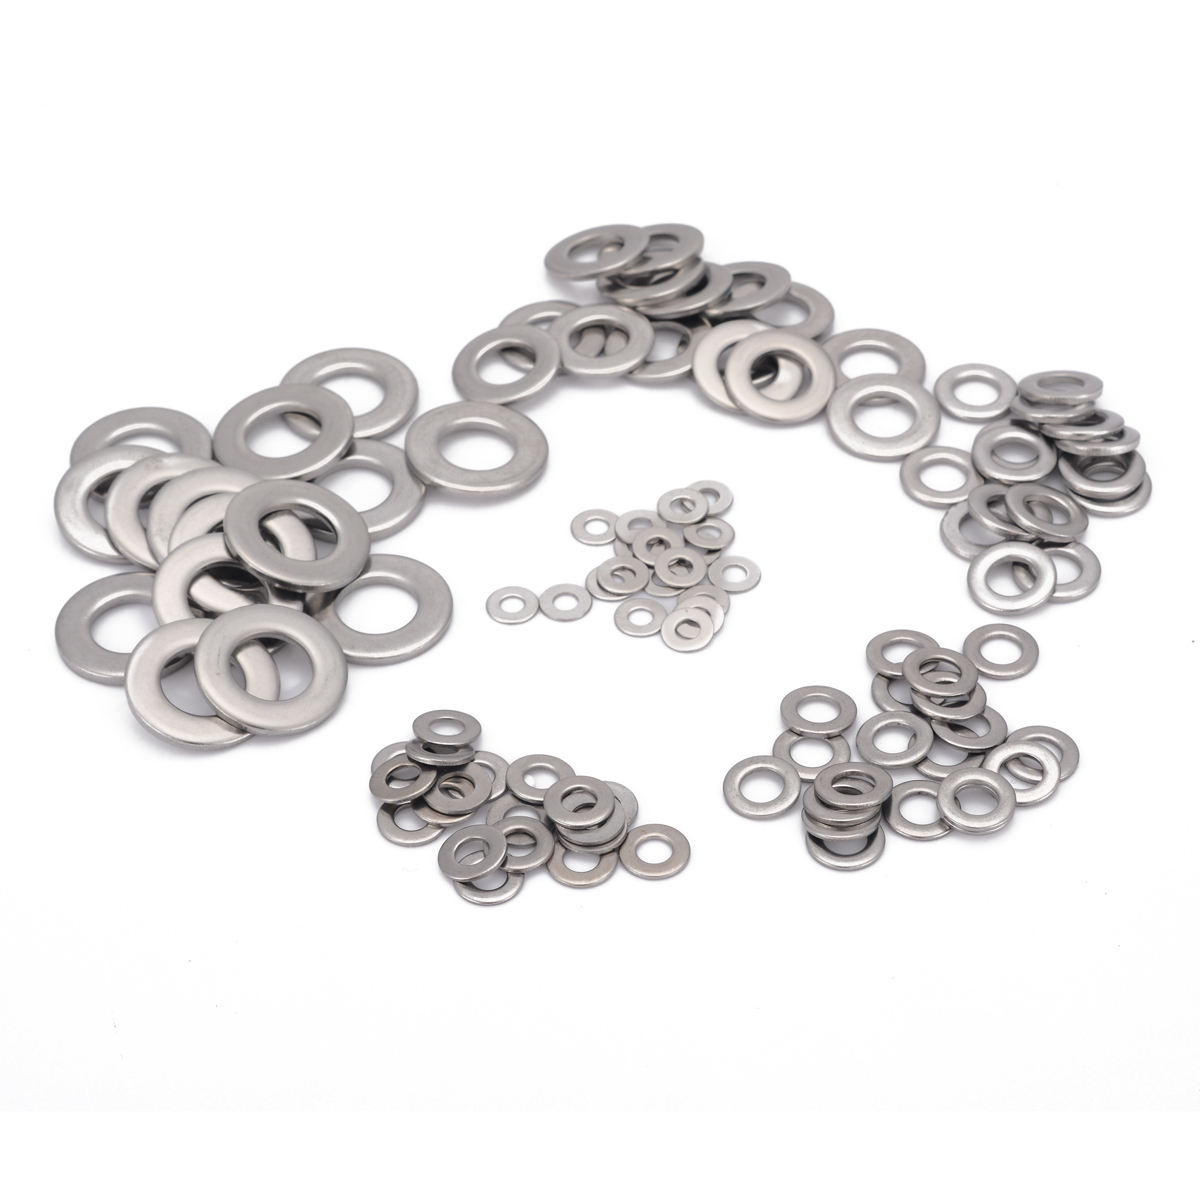 105pcs 304 Silver Stainless Steel Washers M3 M4 M5 M6 M8 M10 Metric Flat Washer Kit For Electronic Instruments